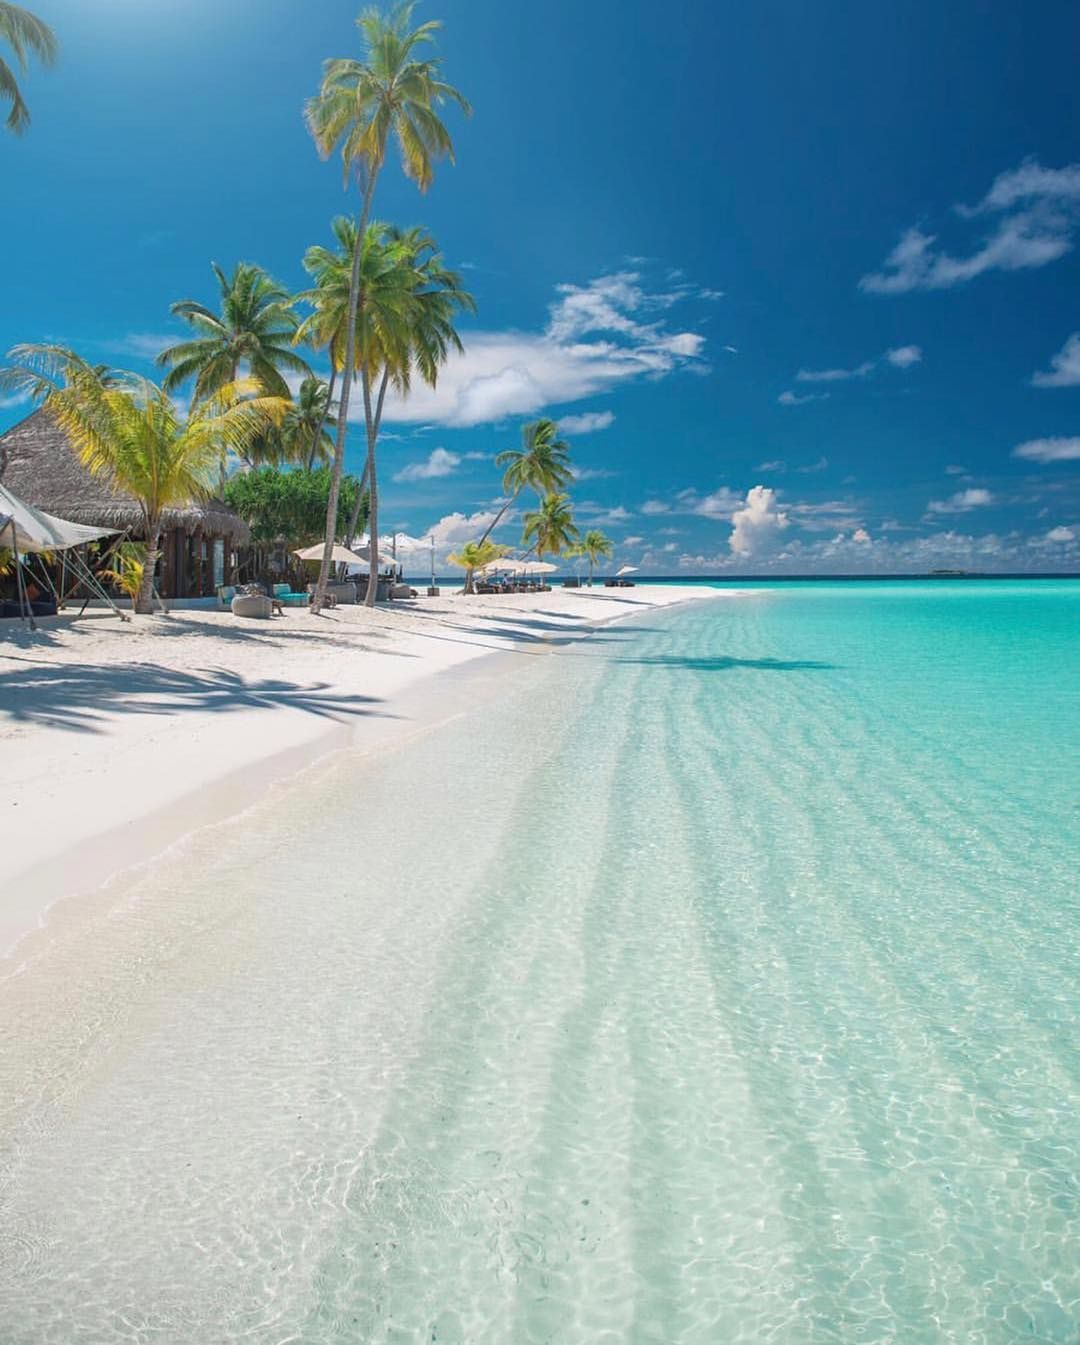 Maldives Beach: 10 Best Photos From The Above Of Maldives